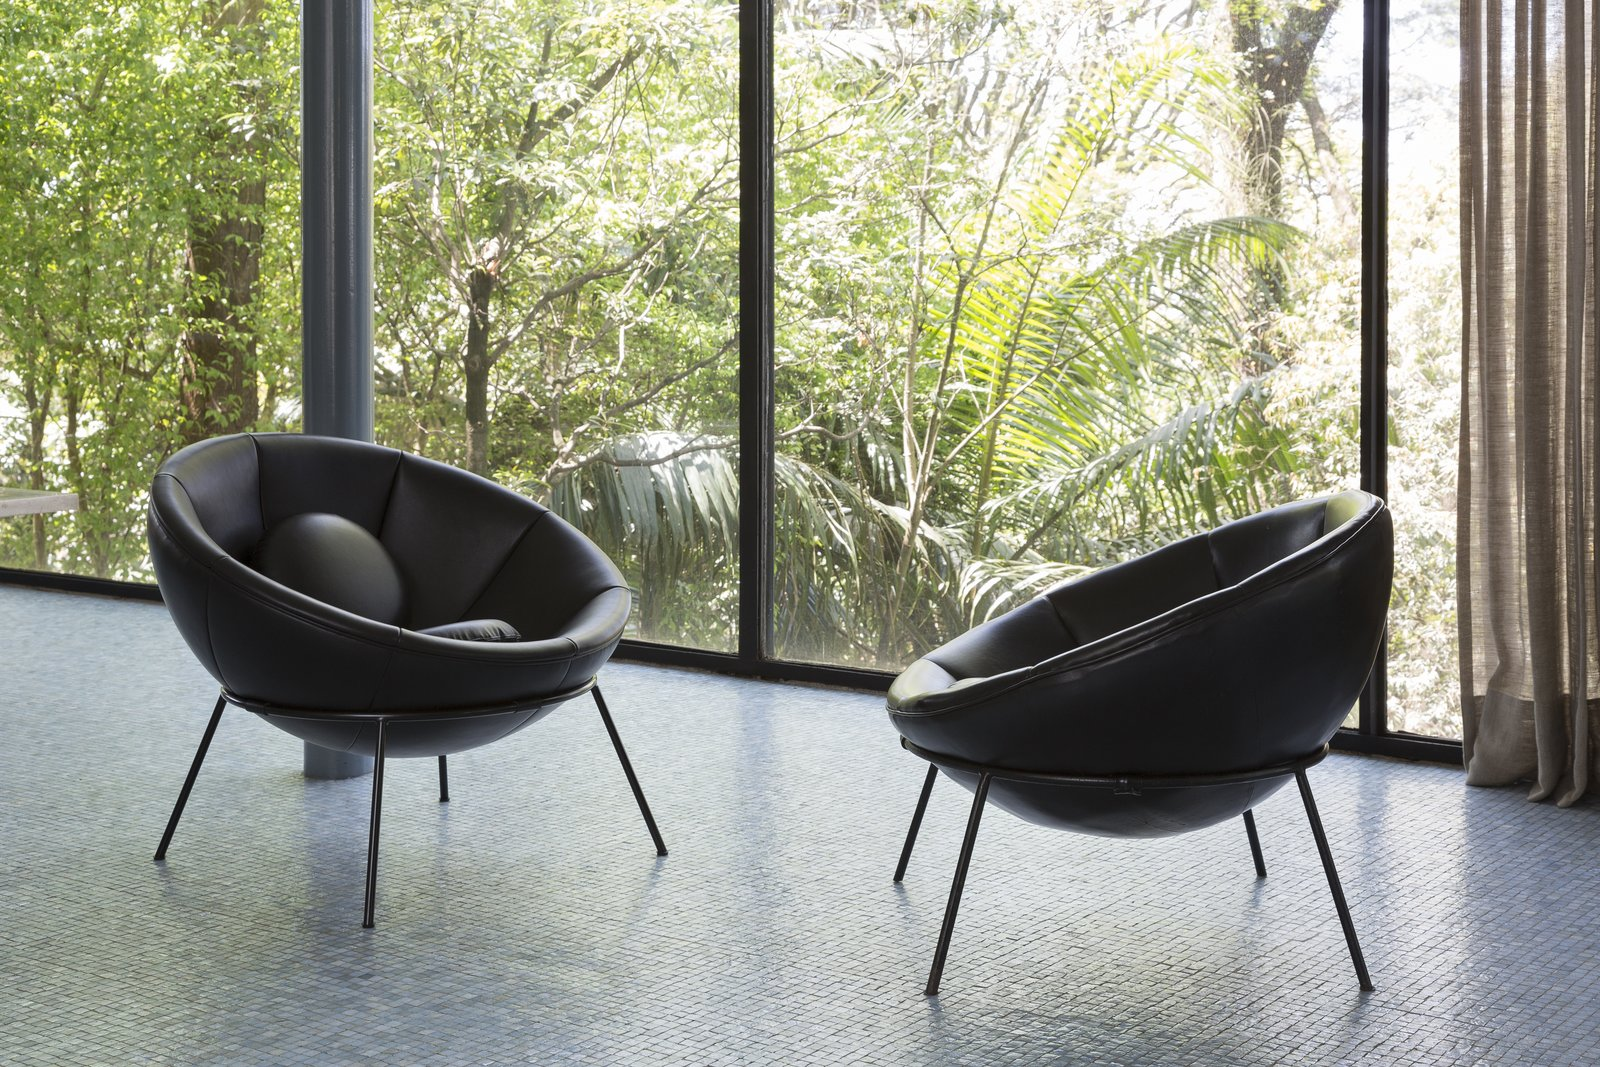 Living Room  Photo 1 of 11 in Modern Master Lina Bo Bardi's Bowl Chair Makes a Comeback